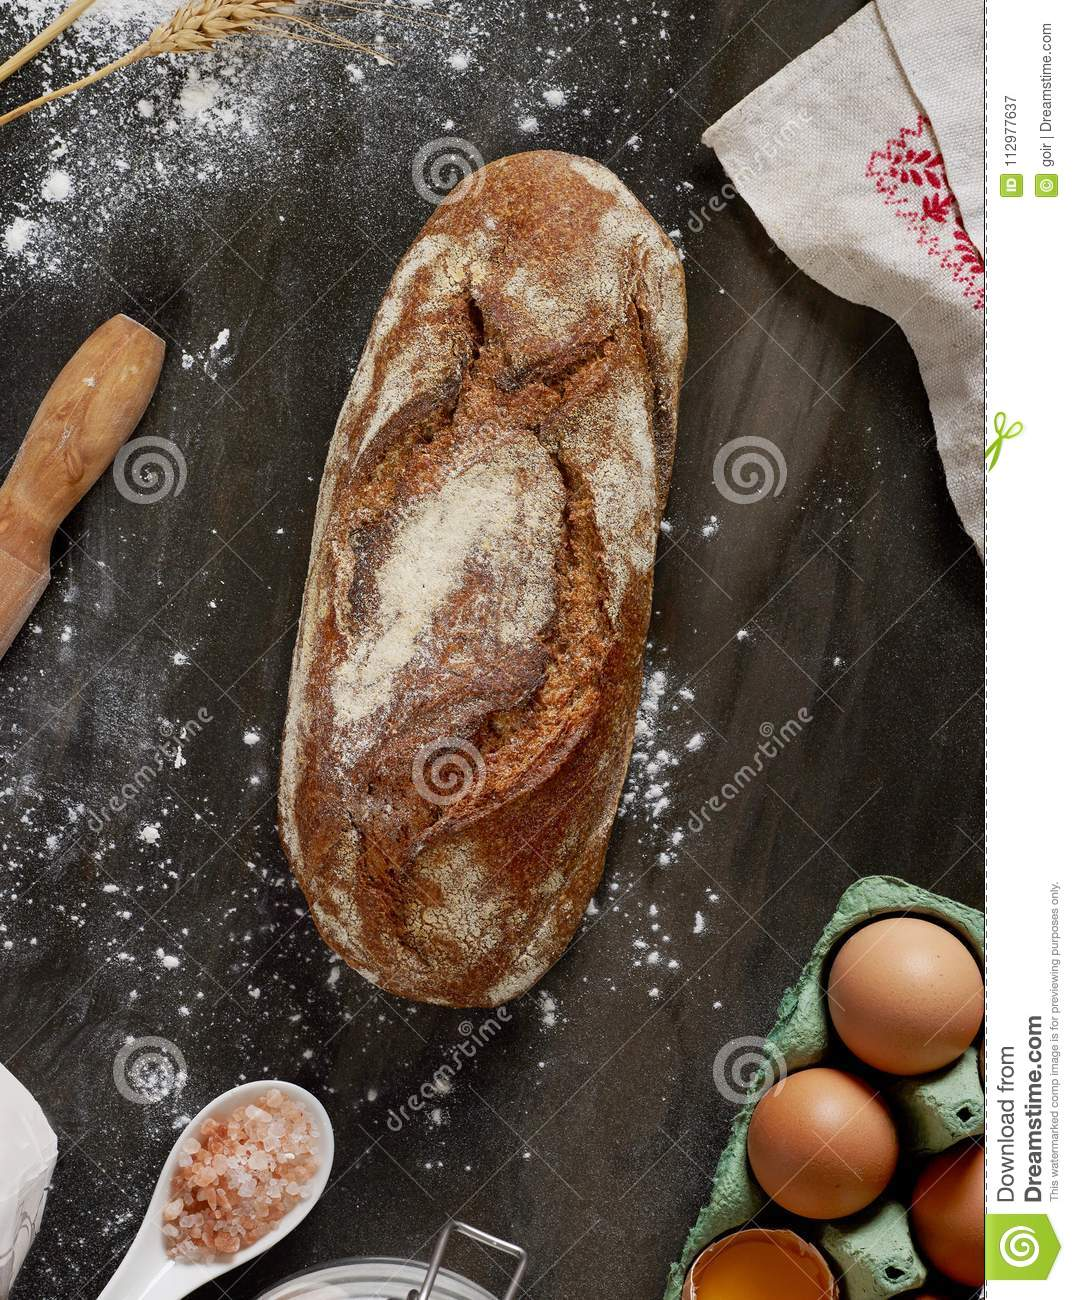 Baking bread from above